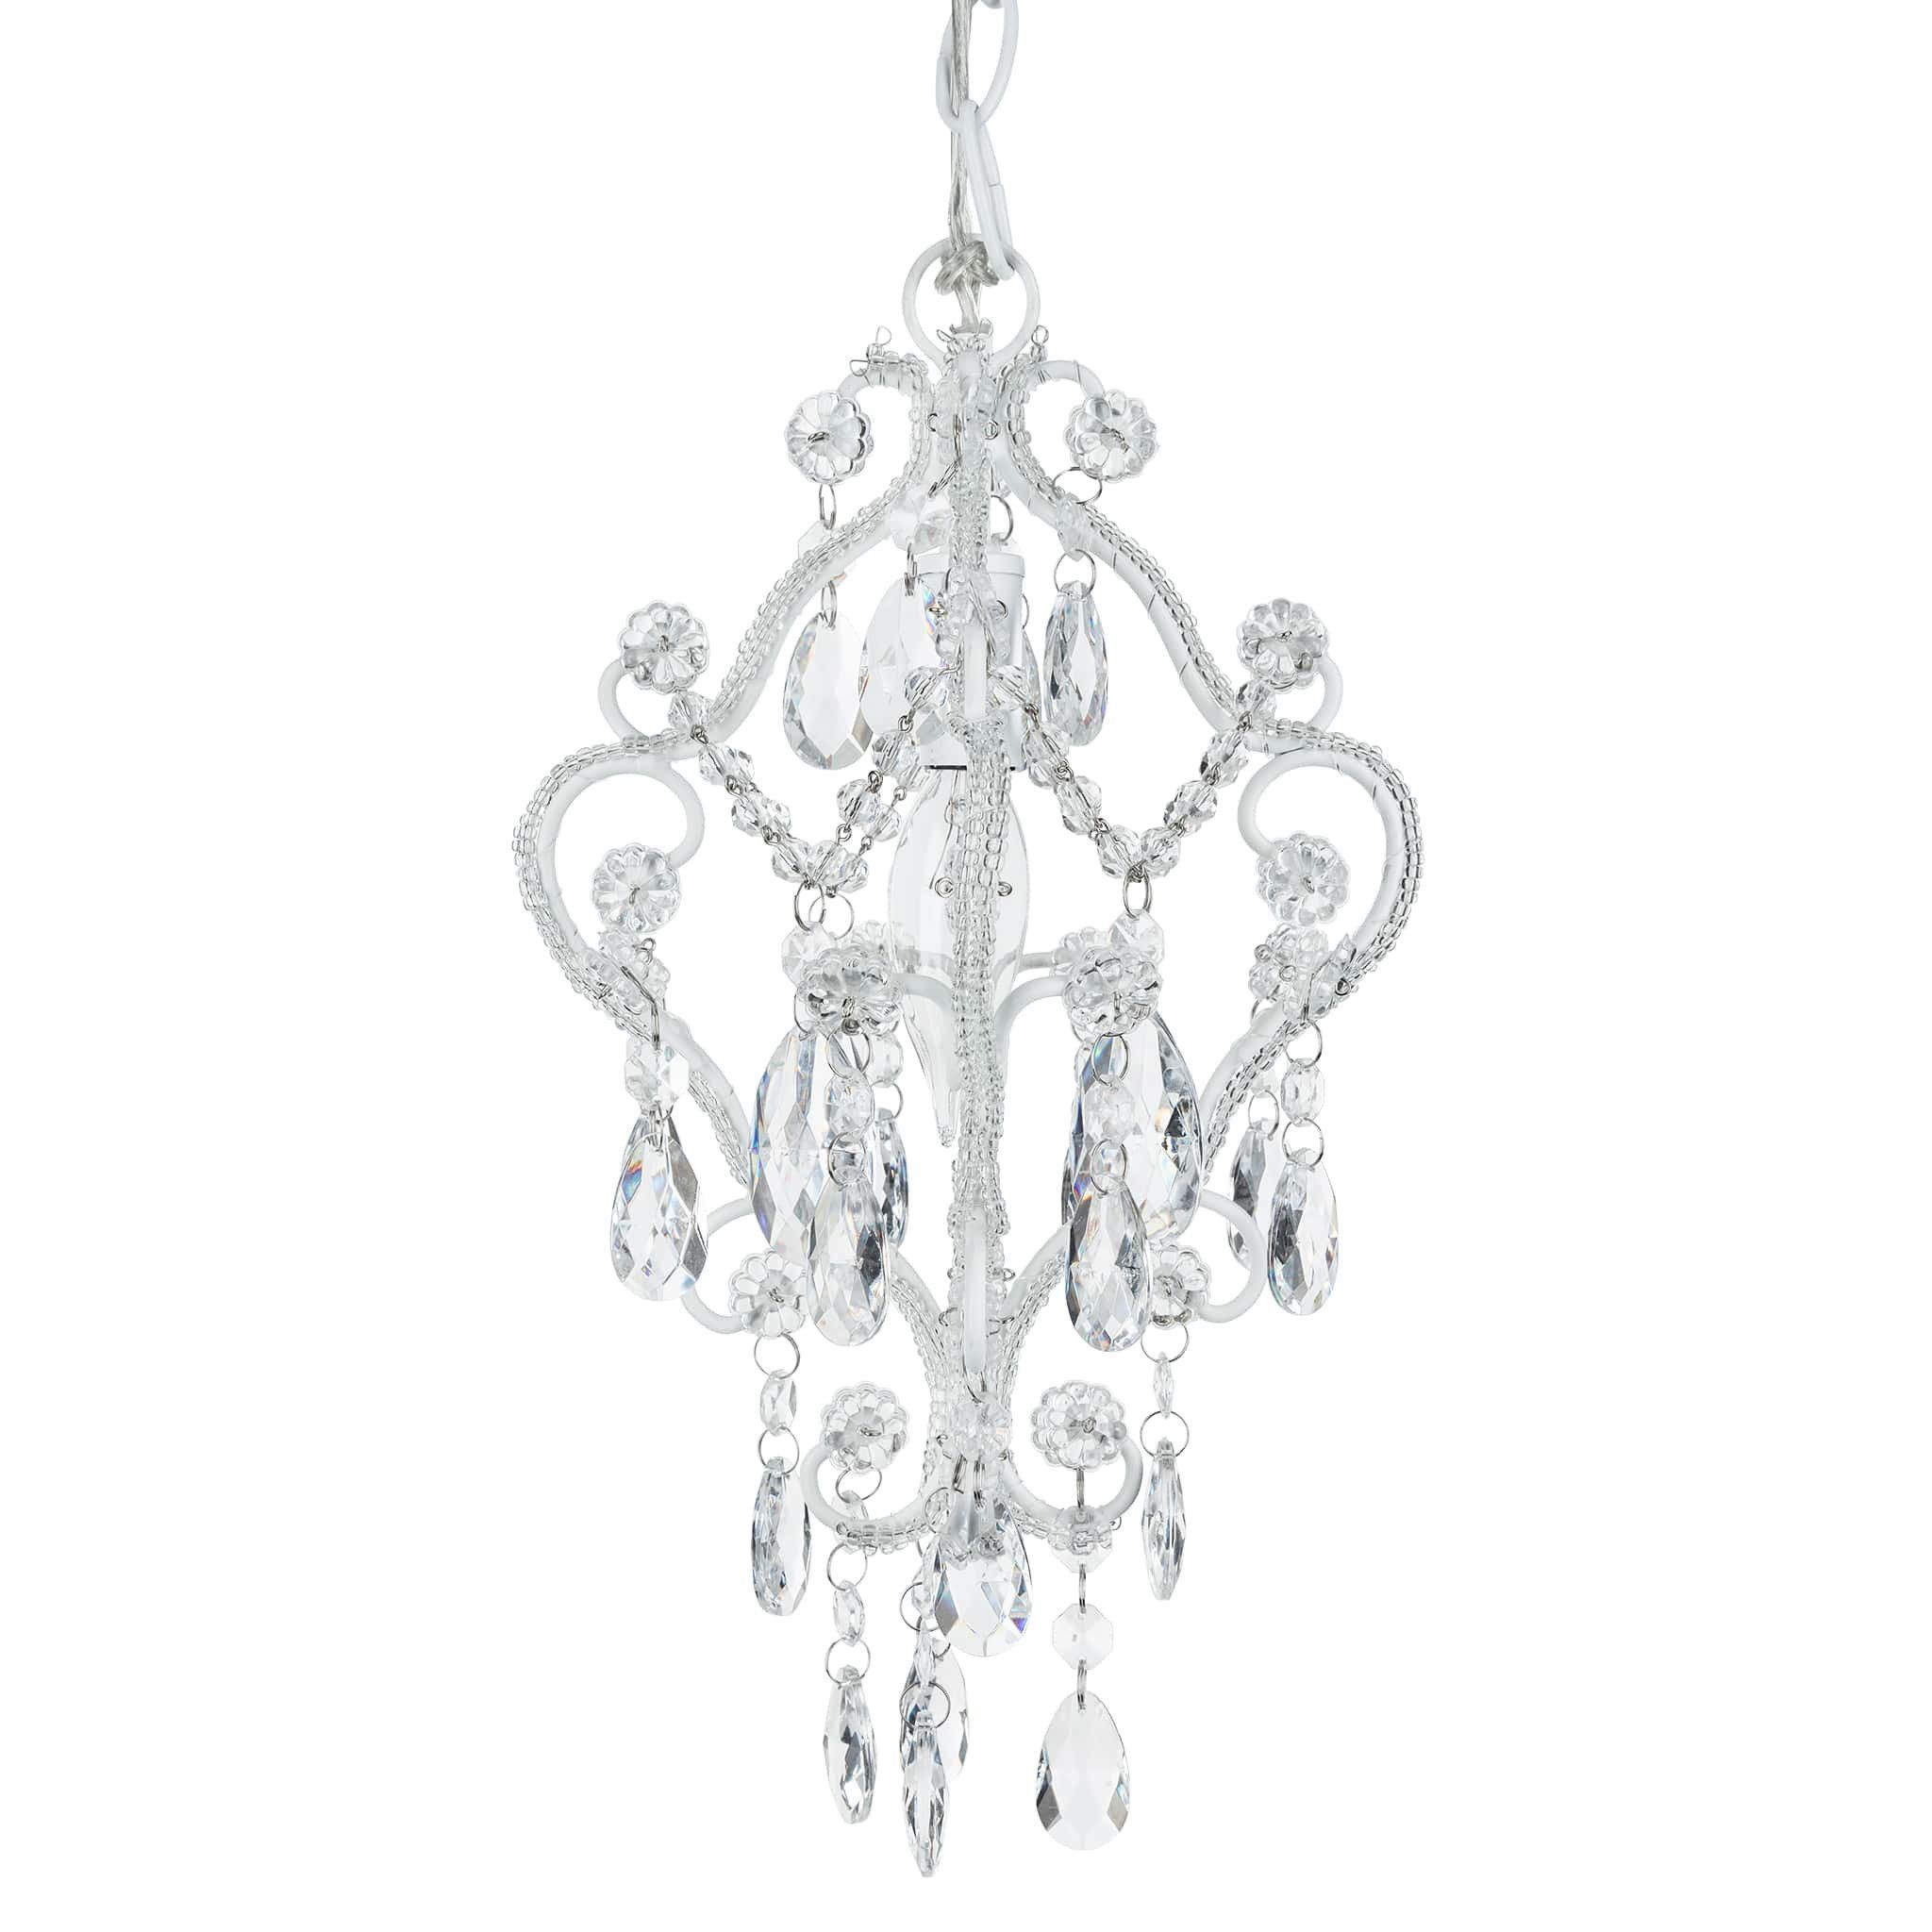 mount co flush mini tulum chandeliers mwp crystal smsender semi light cl chandelier ceiling ag